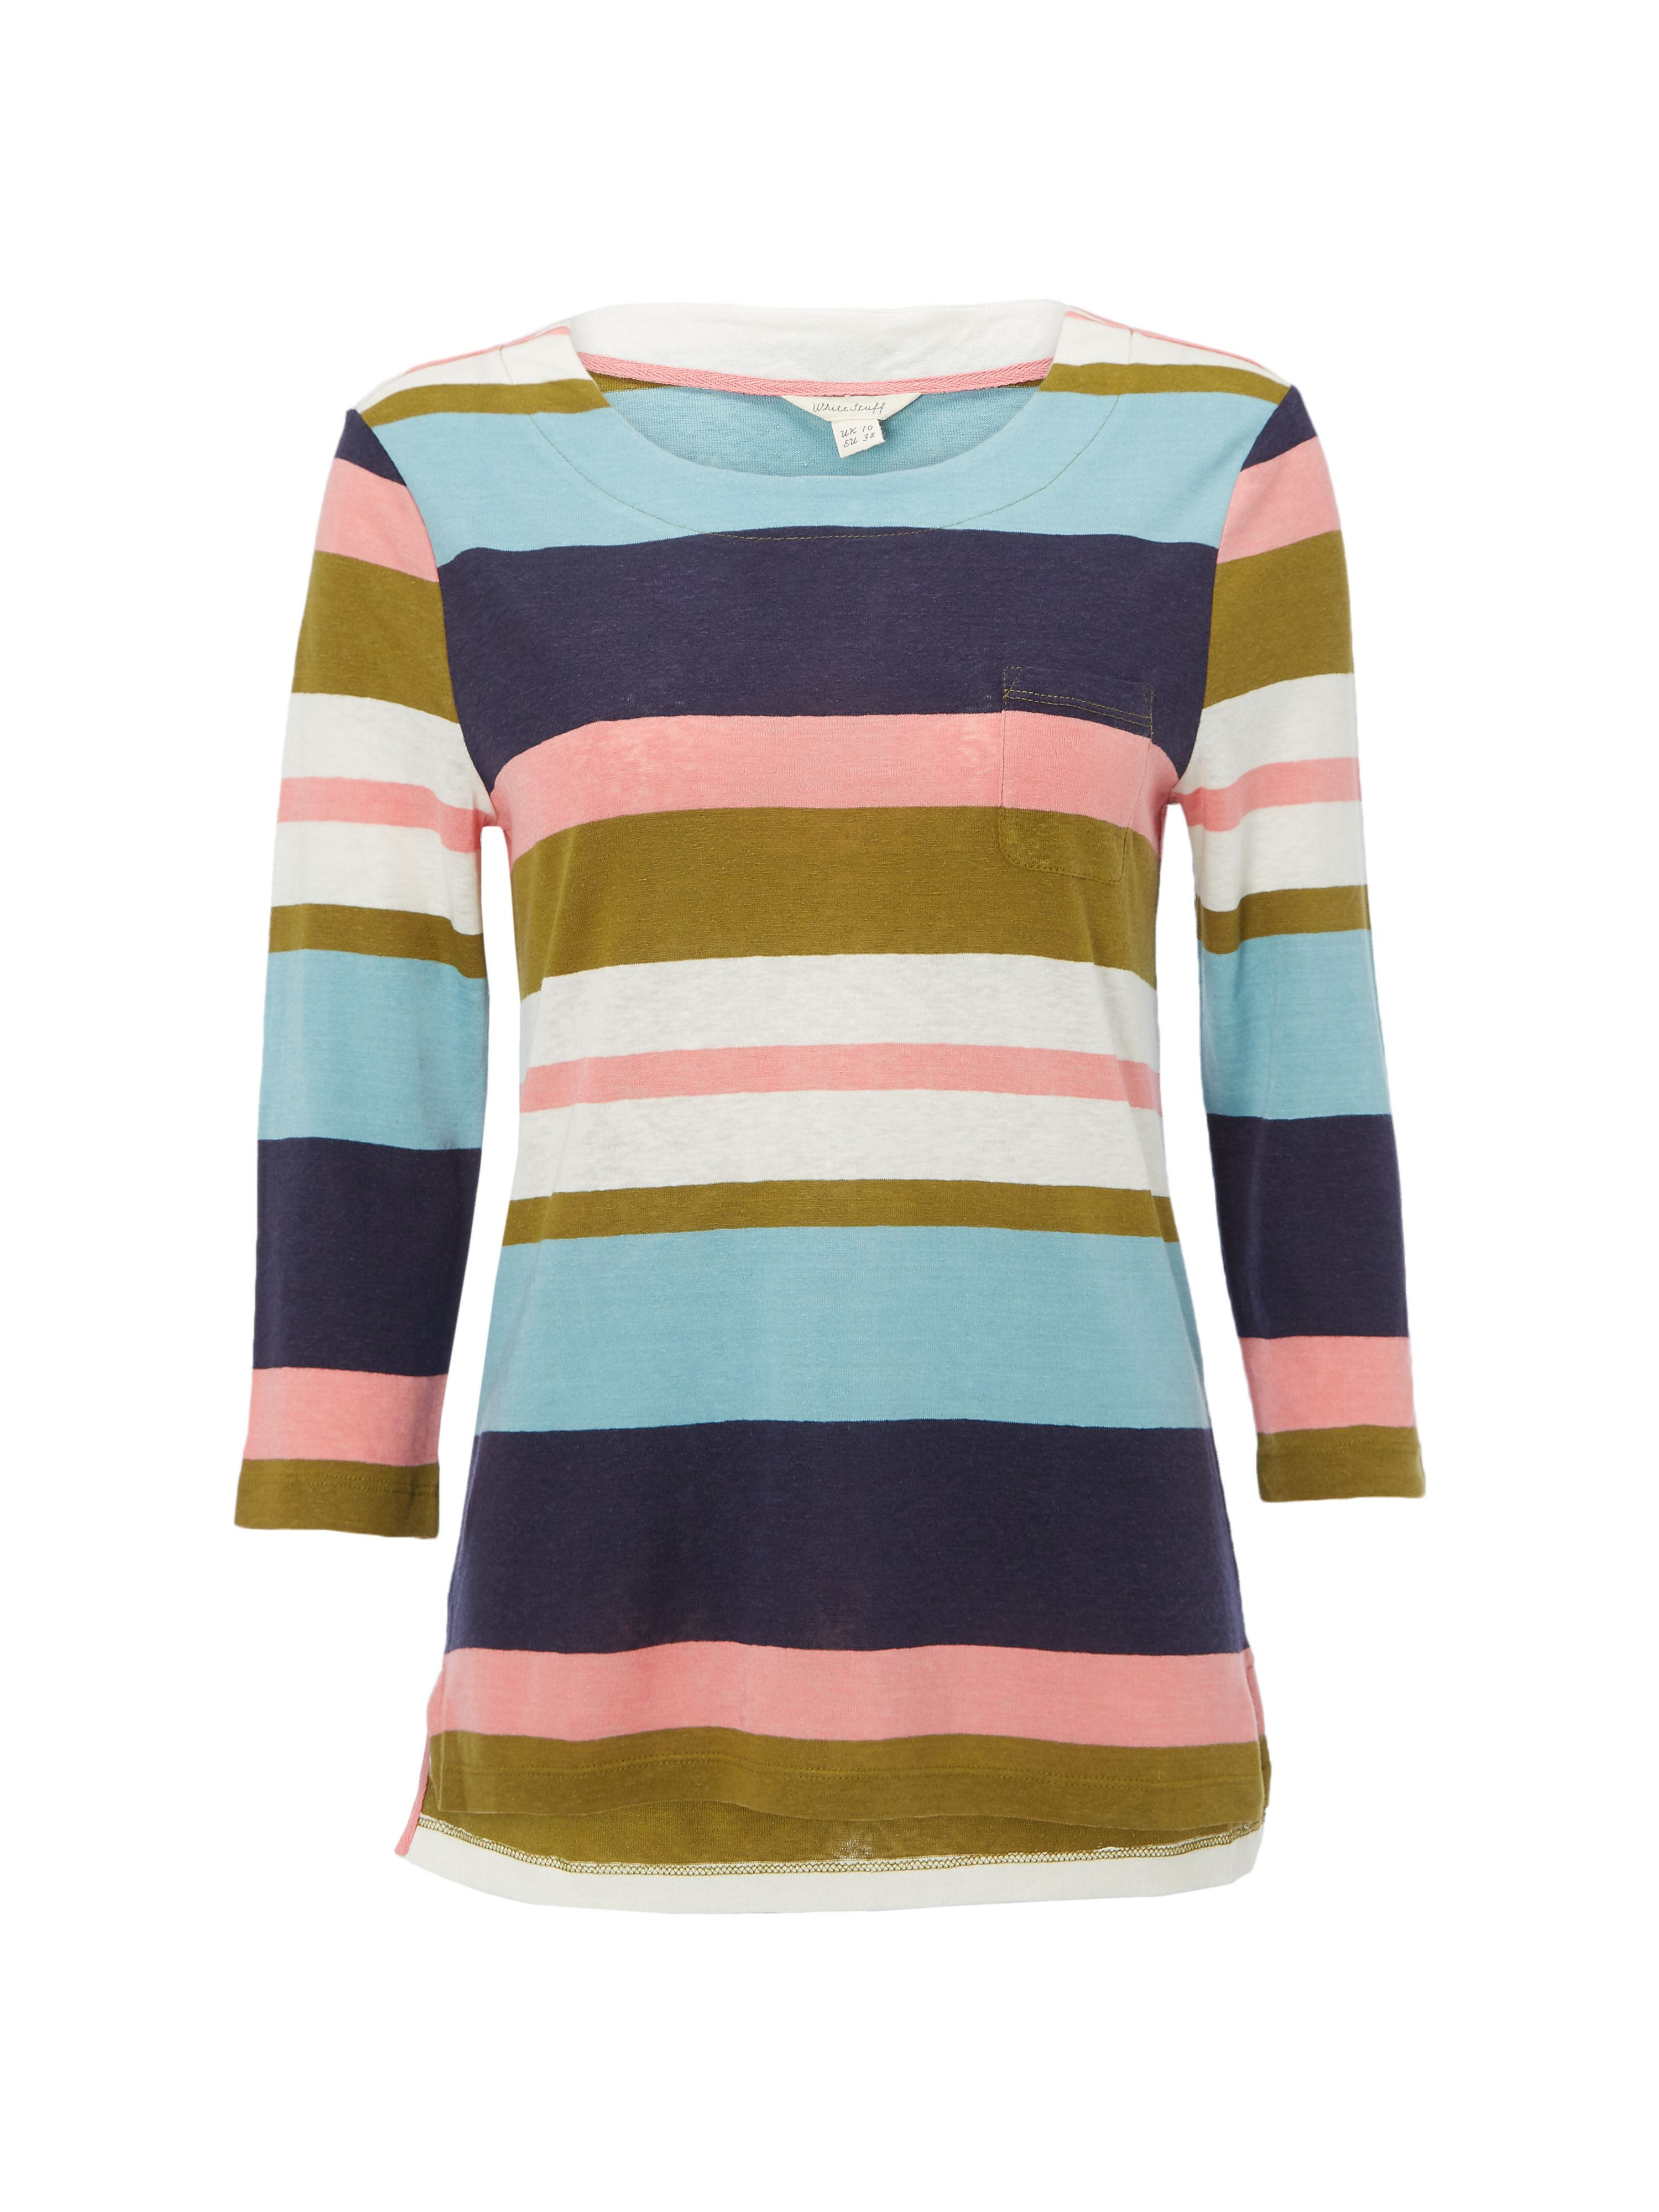 White Stuff Polly Bold Stripe Jersey Tee, Multi-Coloured